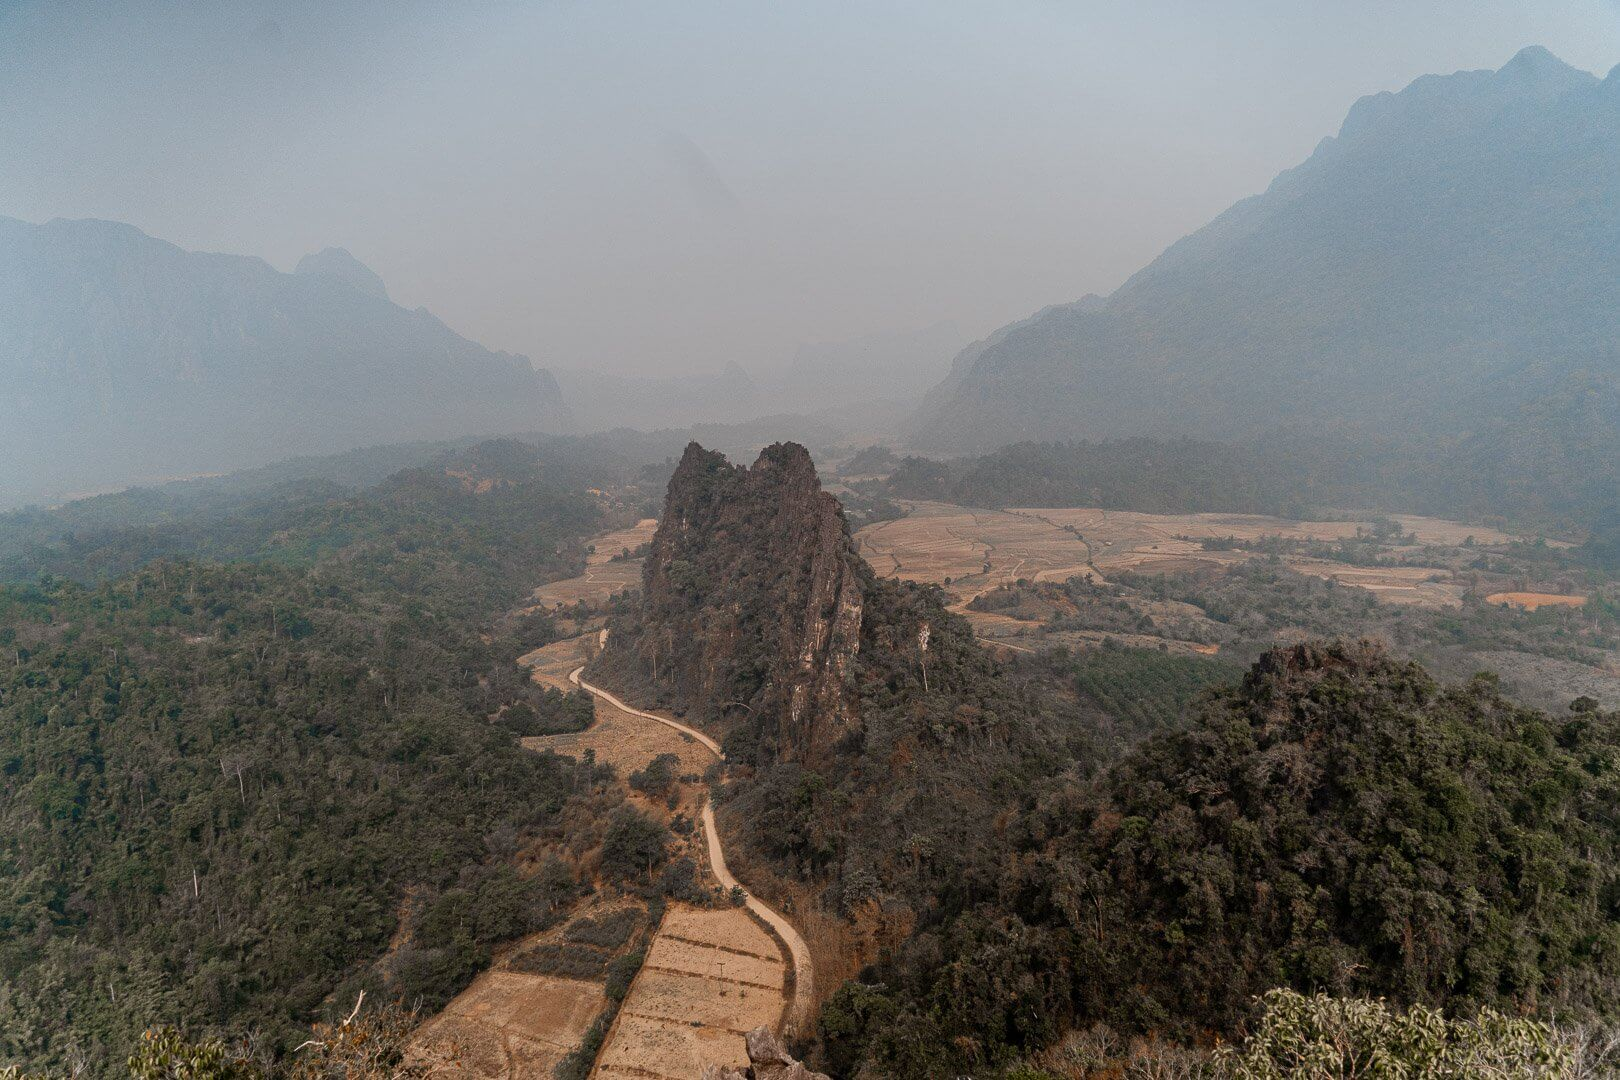 Nam Xay viewpoint in Vang Vieng. The viewpoint is famous for the large, protruding cliff in the middle of the valley